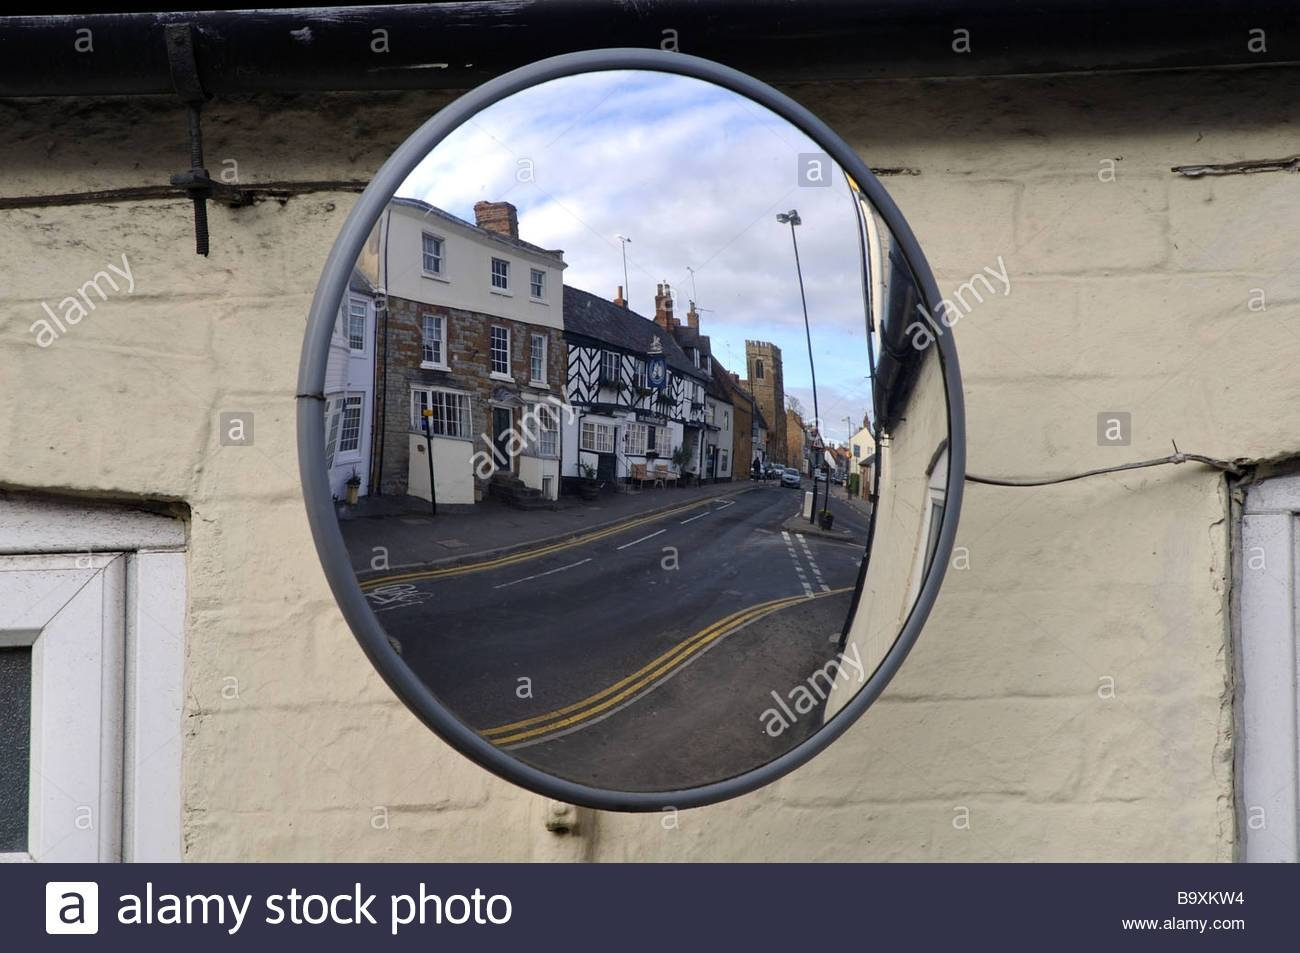 Convex Mirror Stock Photos & Convex Mirror Stock Images - Alamy regarding Buy Convex Mirrors (Image 5 of 15)